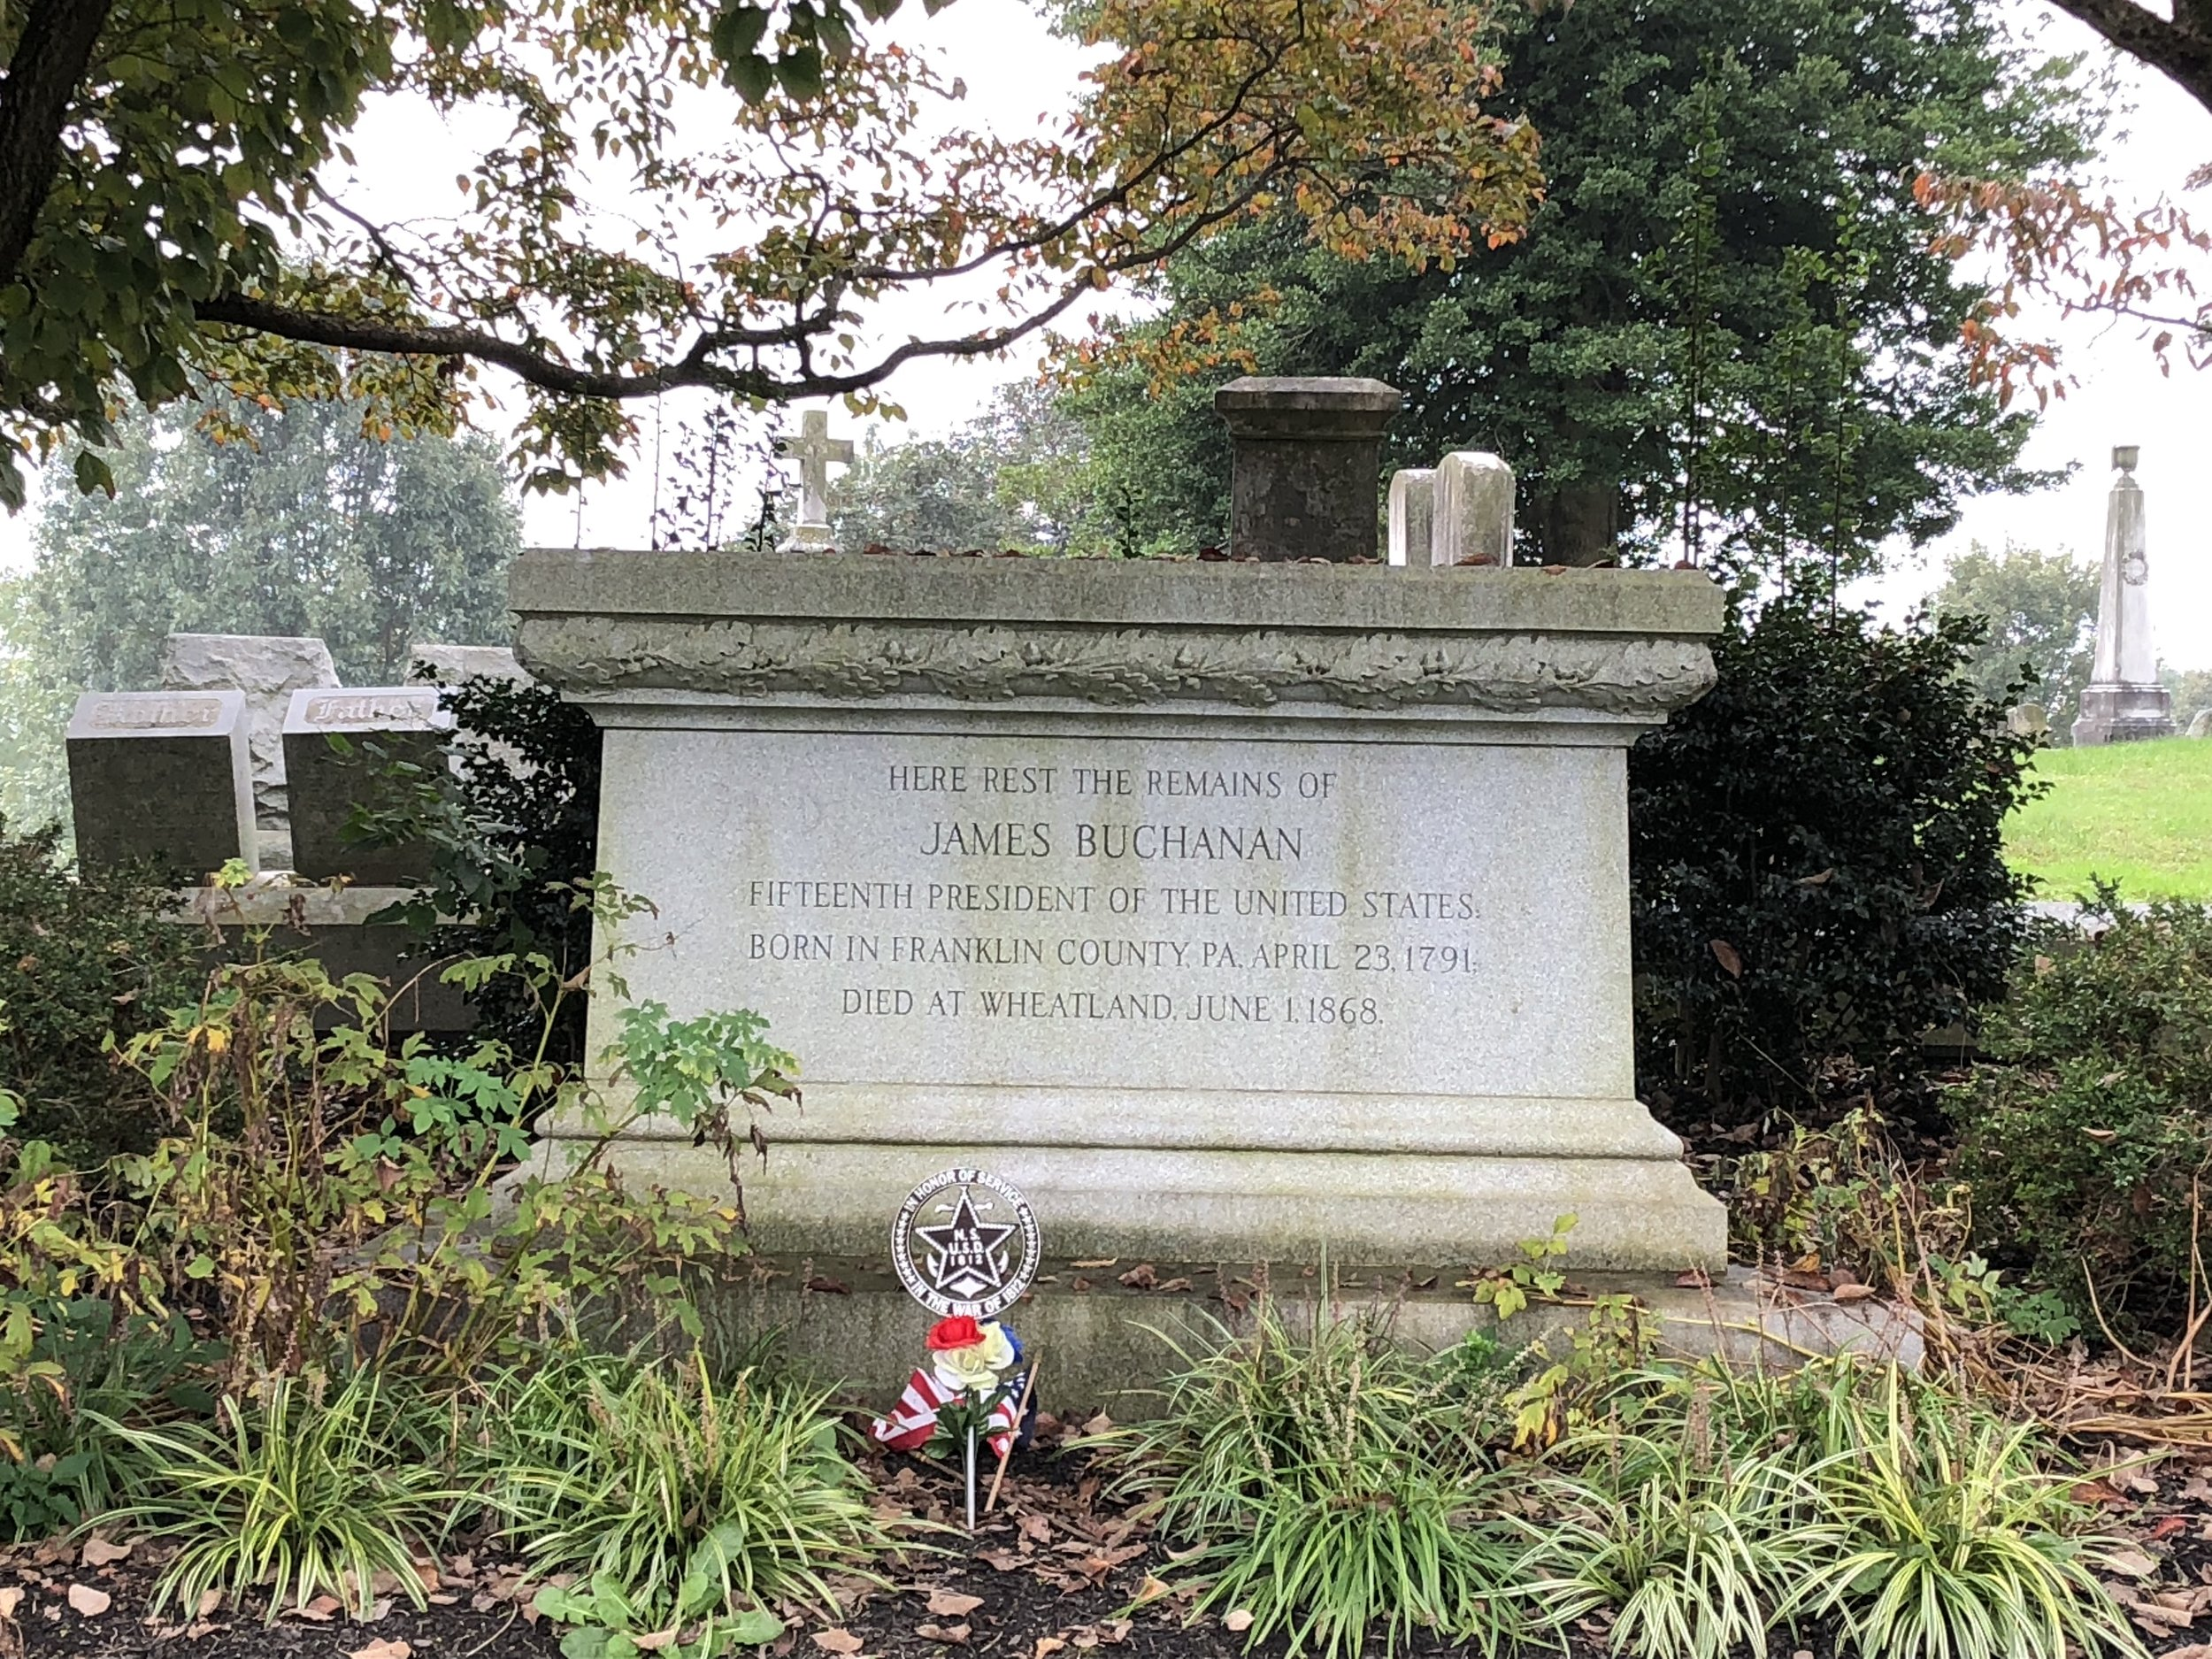 Buchanan's grave in Lancaster at Woodward Hill Cemetery. He was not a popular figure by the time he left the Presidency but his gravesite is well manicured befitting a man who held our highest office.